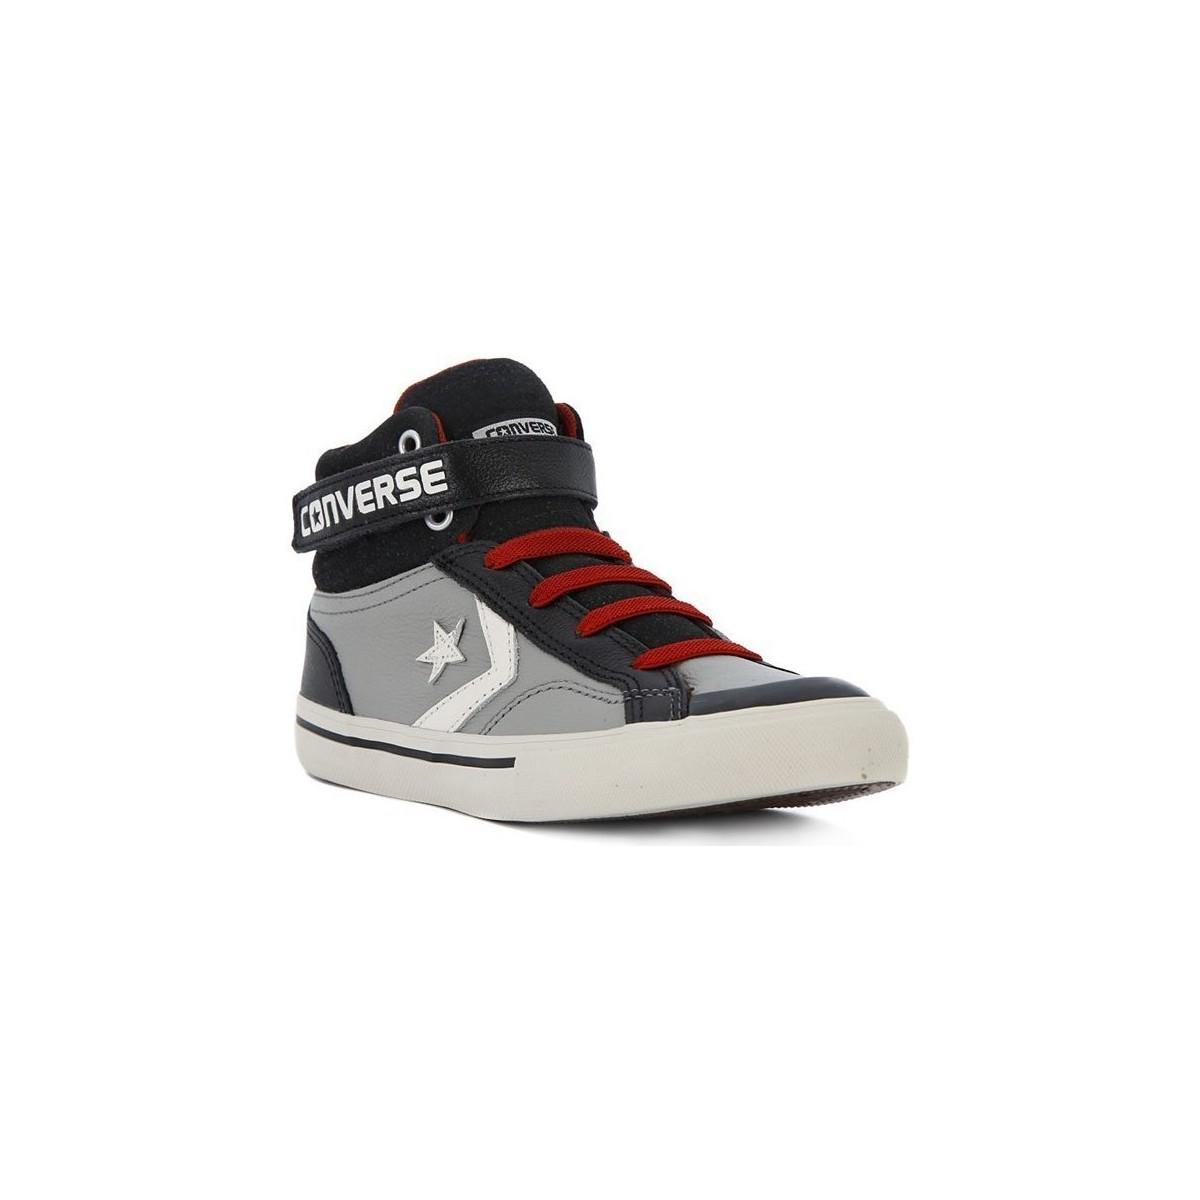 92b4bce0cd3 converse-black-Pro-Blaze-Strap-Womens-Shoes-high-top-Trainers-In-Black.jpeg